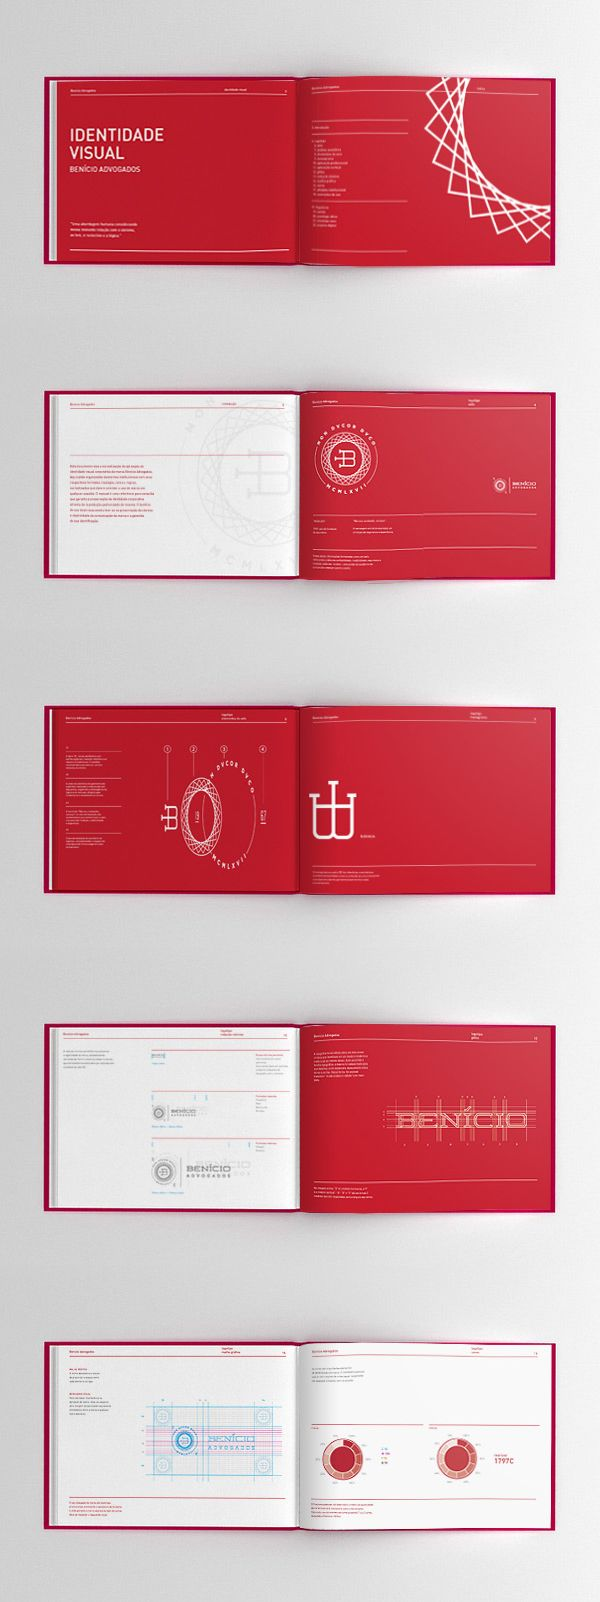 Identidade Visual Brand Guidelines